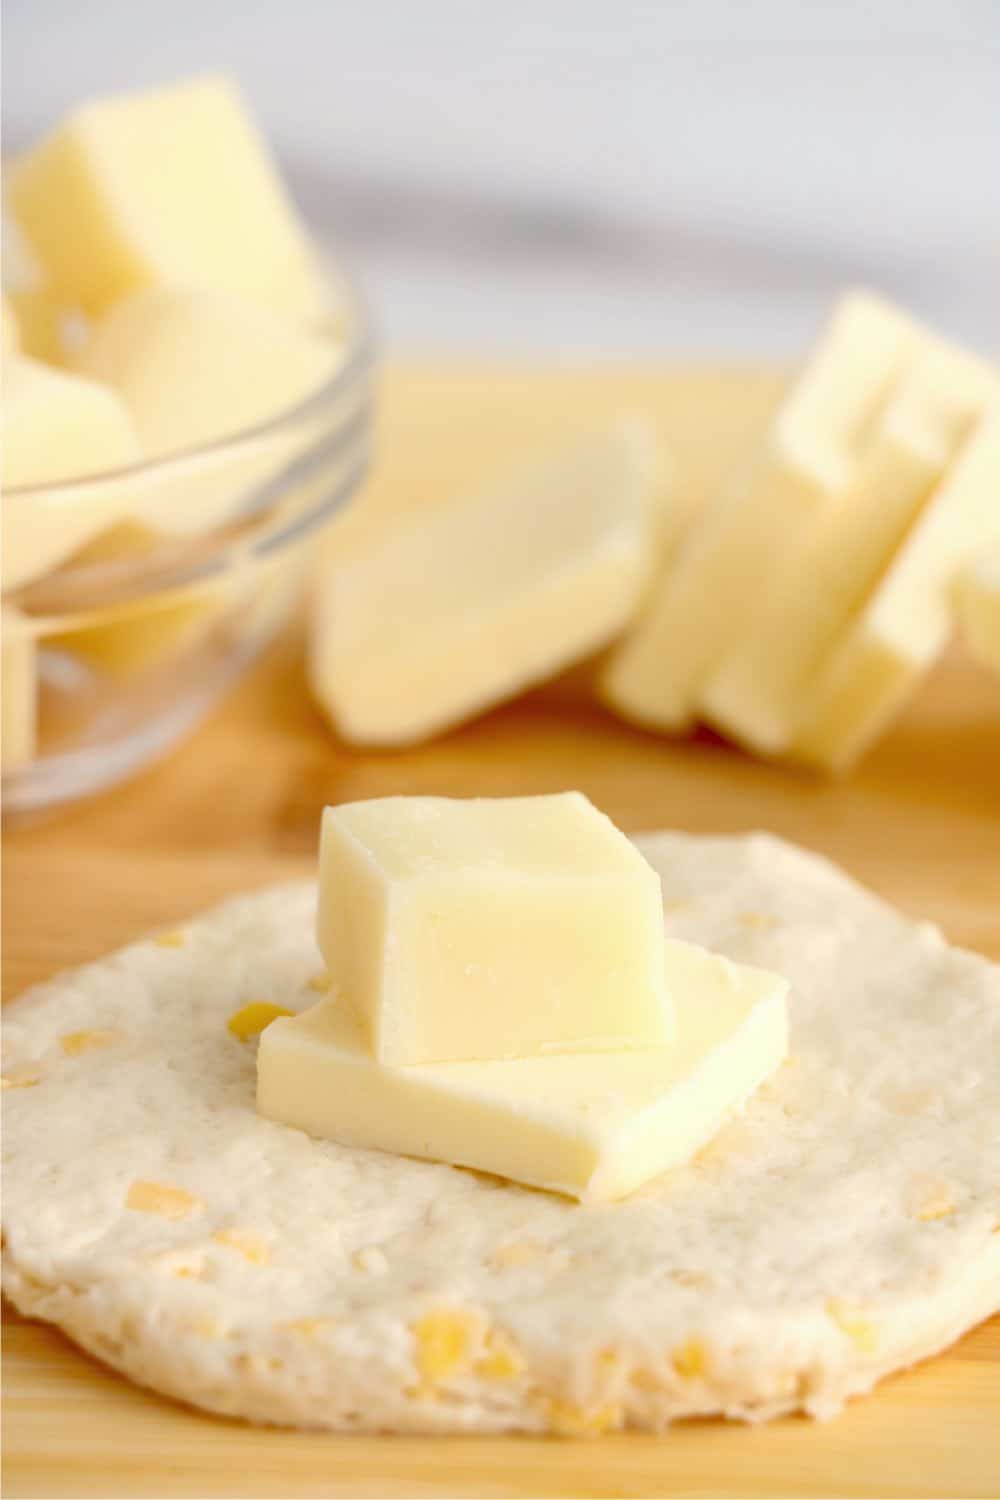 Butter and cheese in the middle of raw biscuit dough